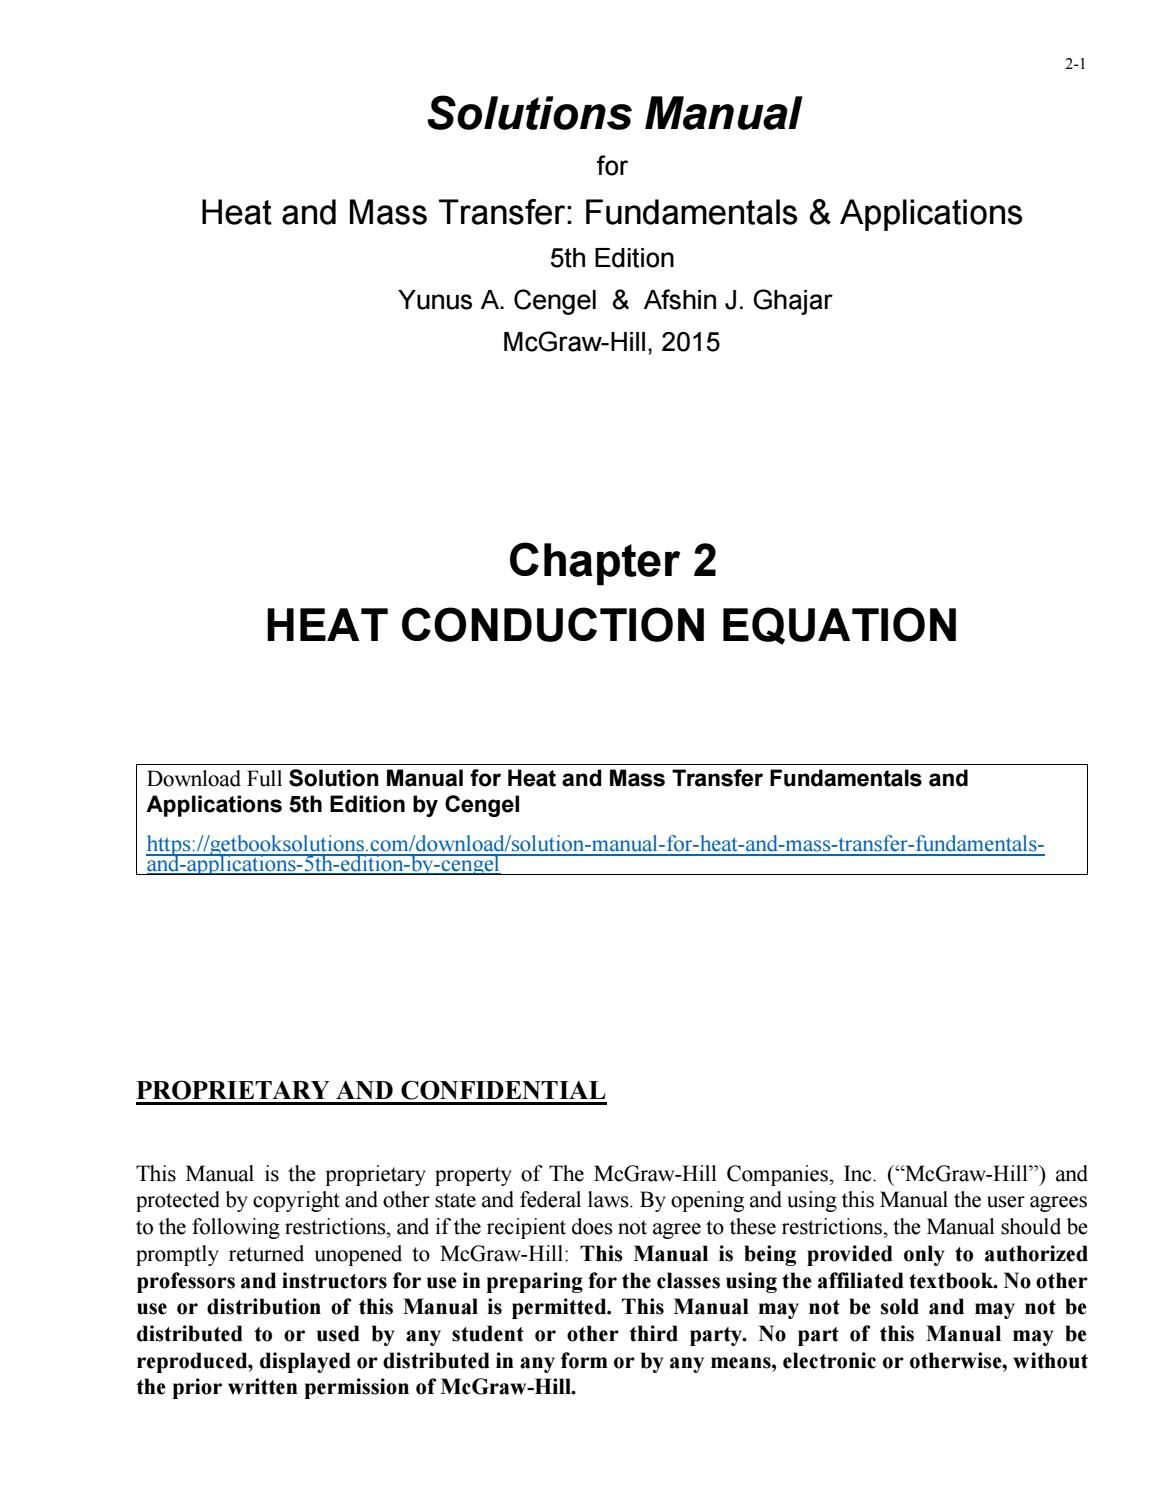 solution manual for heat and mass transfer fundamentals and rh pinterest com heat transfer solution manual incropera pdf heat transfer solution manual cengel pdf